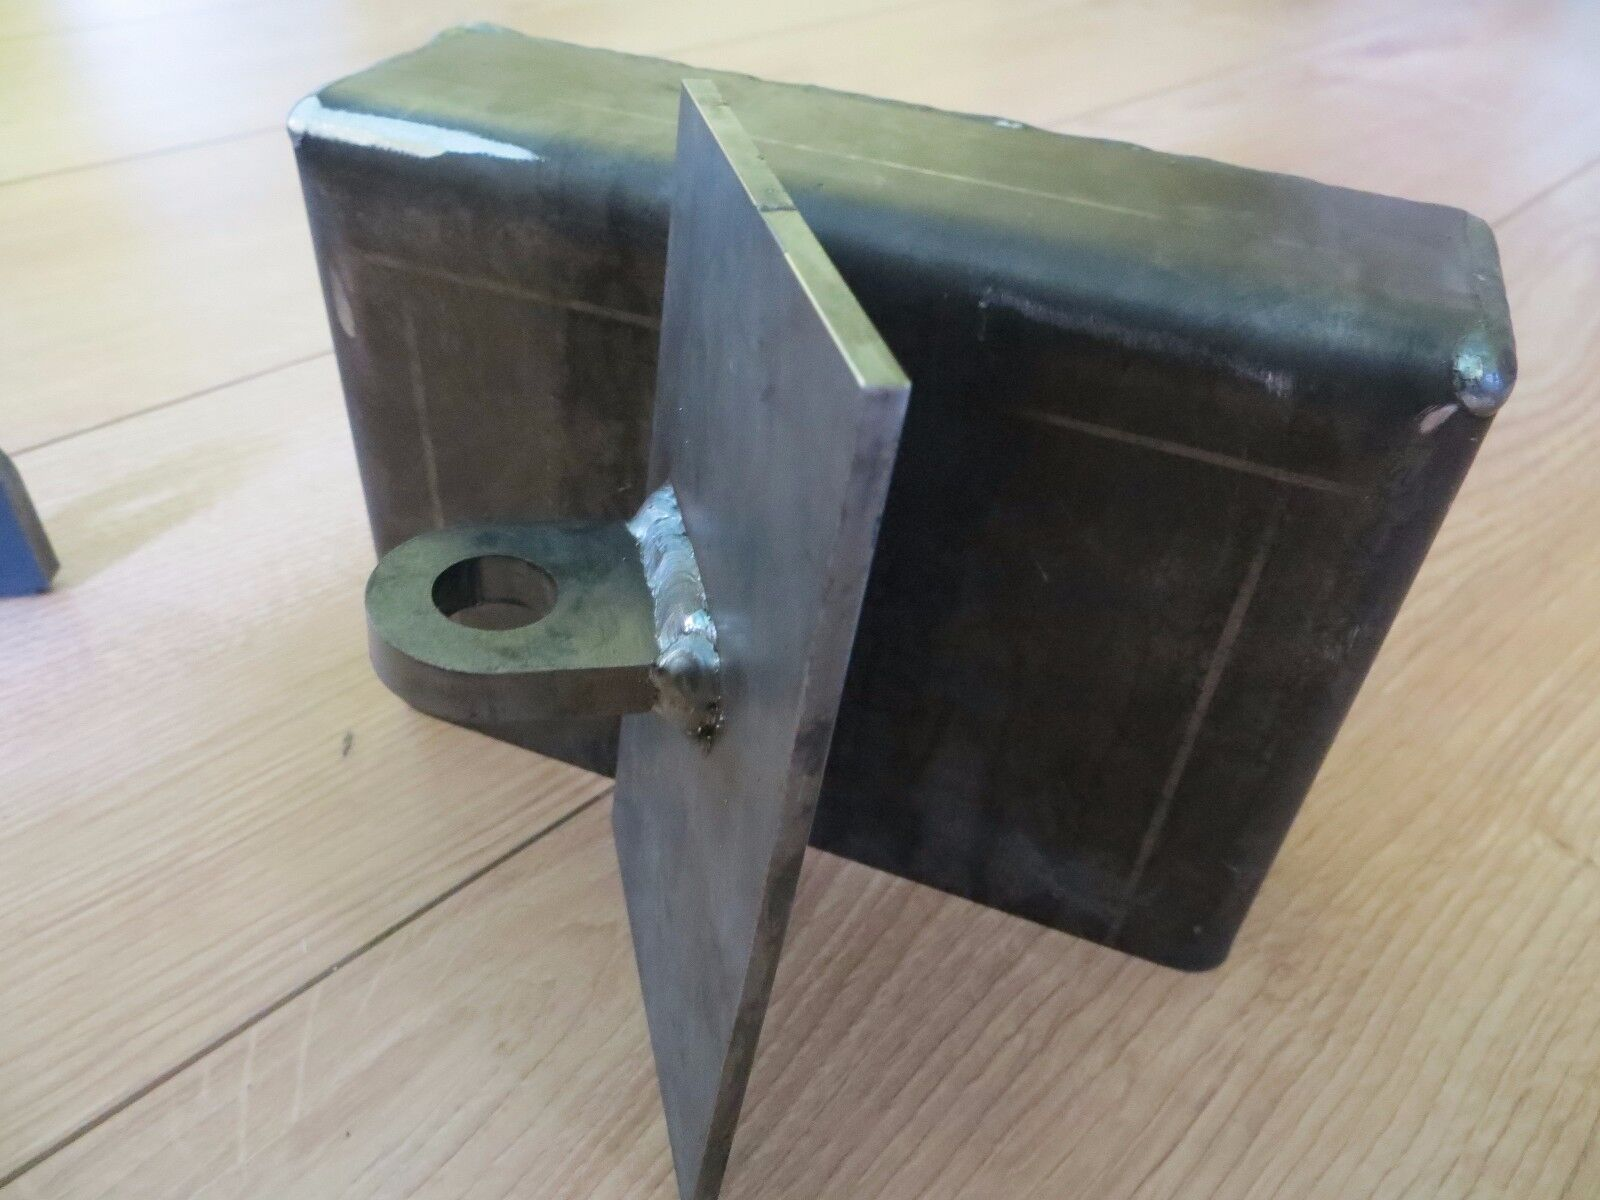 Shipping container weld on lock box right hand opening door security picclick uk - Shipping container end welding ...